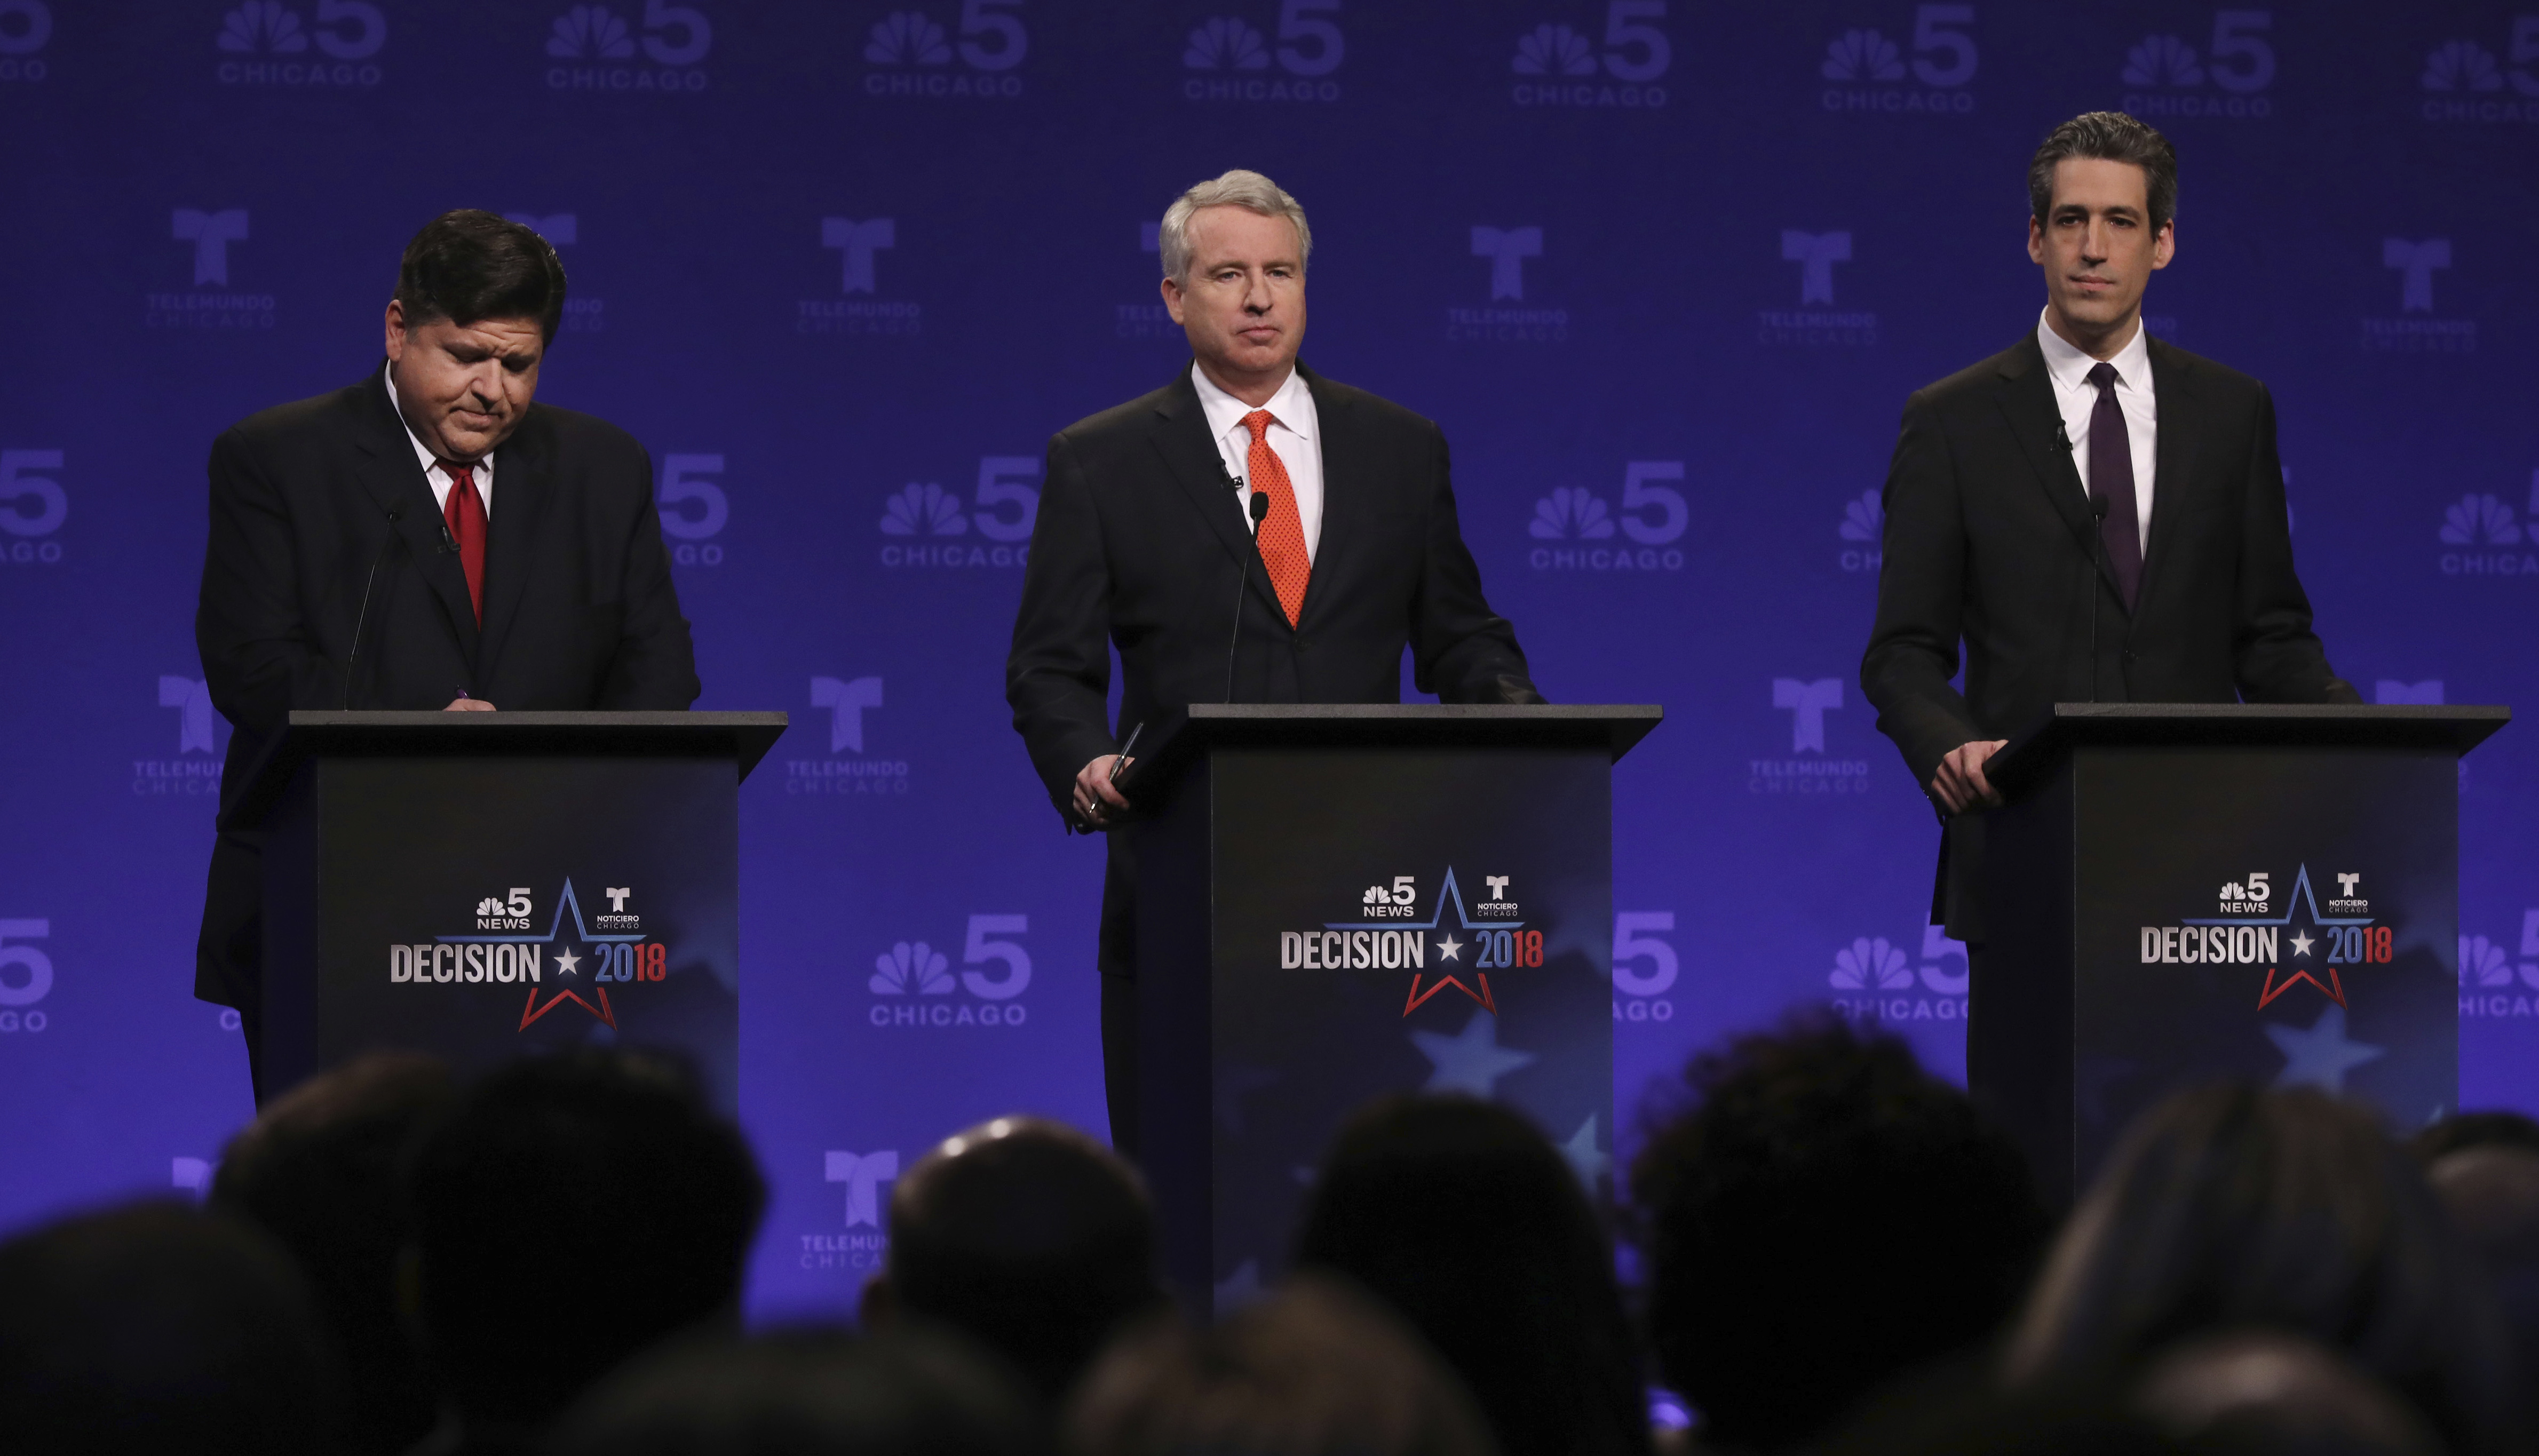 Democrats running for Illinois governor from left, billionaire J.B. Pritzker, businessman Chris Kennedy, and state Sen. Daniel Biss take their podium positions before a televised forum in January. (John J. Kim/AP)